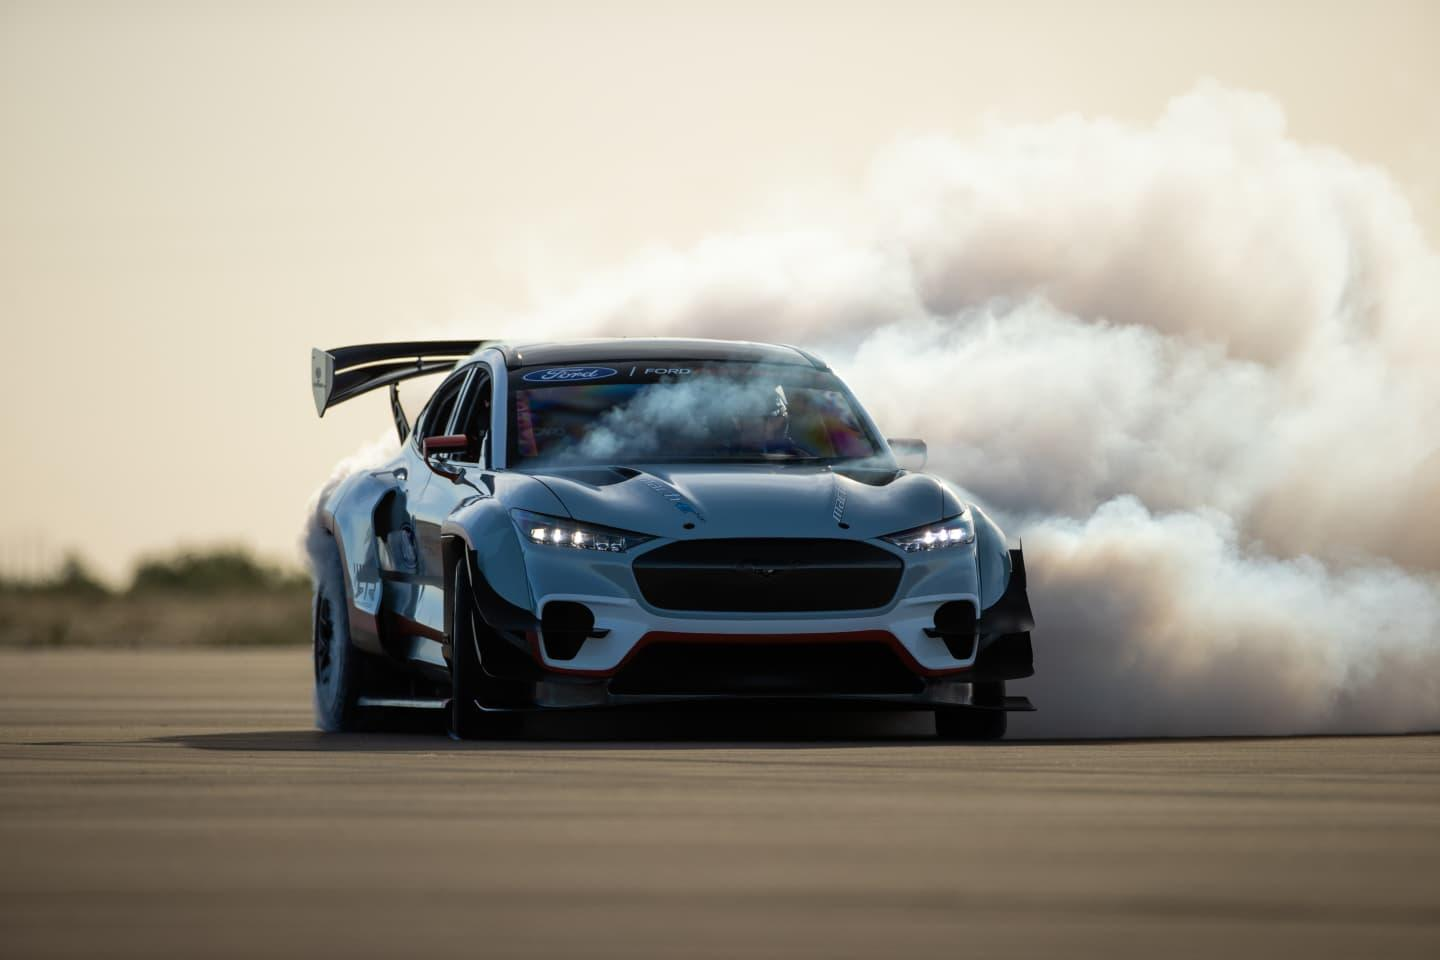 ford-mustang-mach-e-1400-ken-block-reveal-photos-26